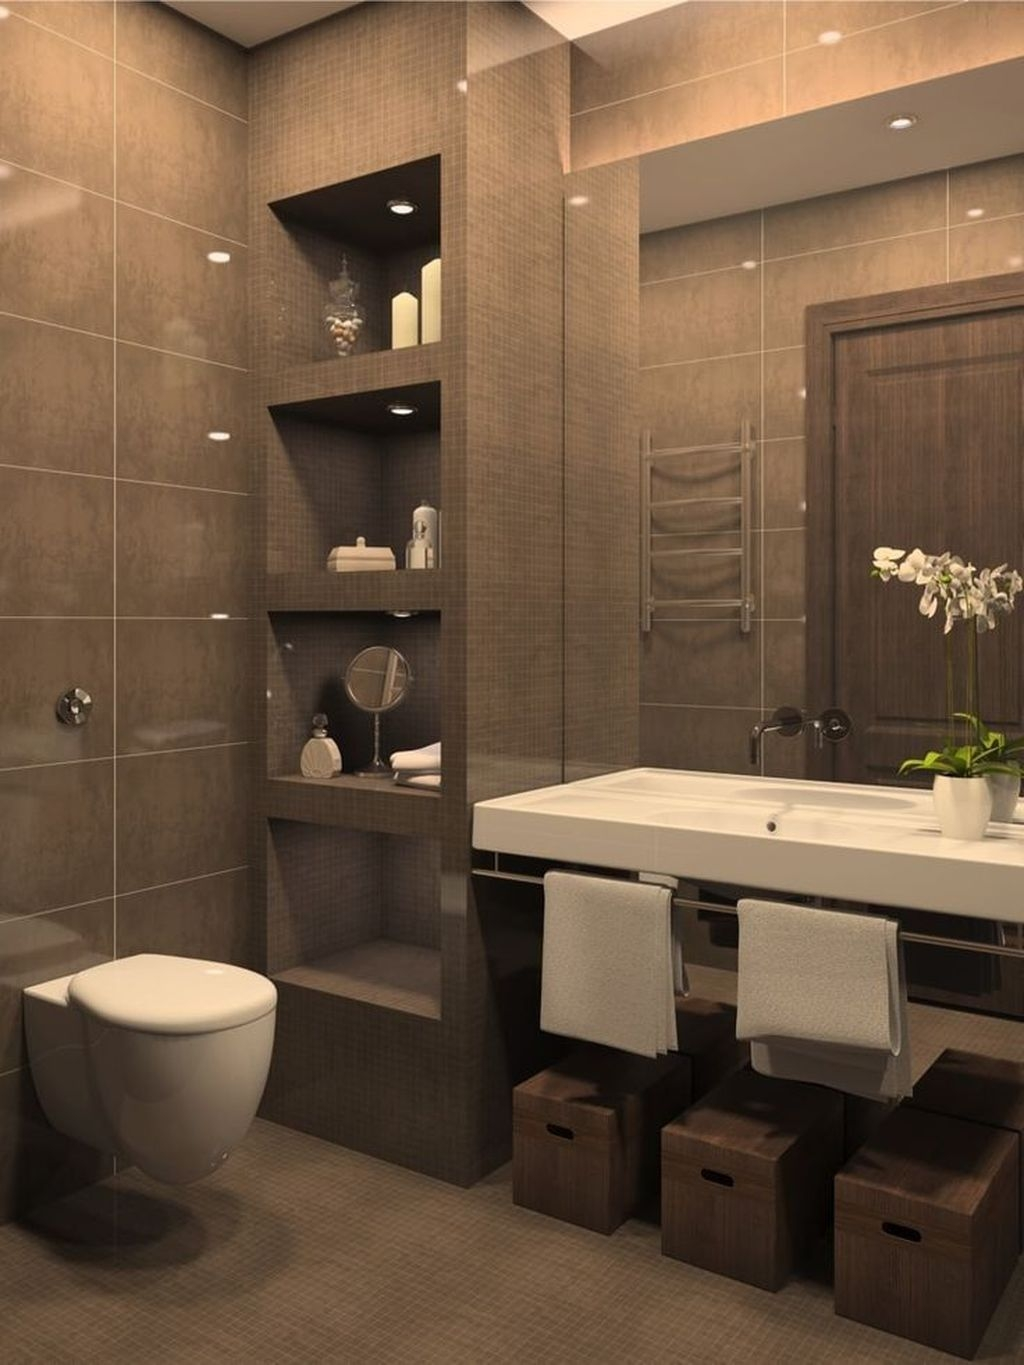 Amazing Bathroom Designs Ideas To Try Right Now02